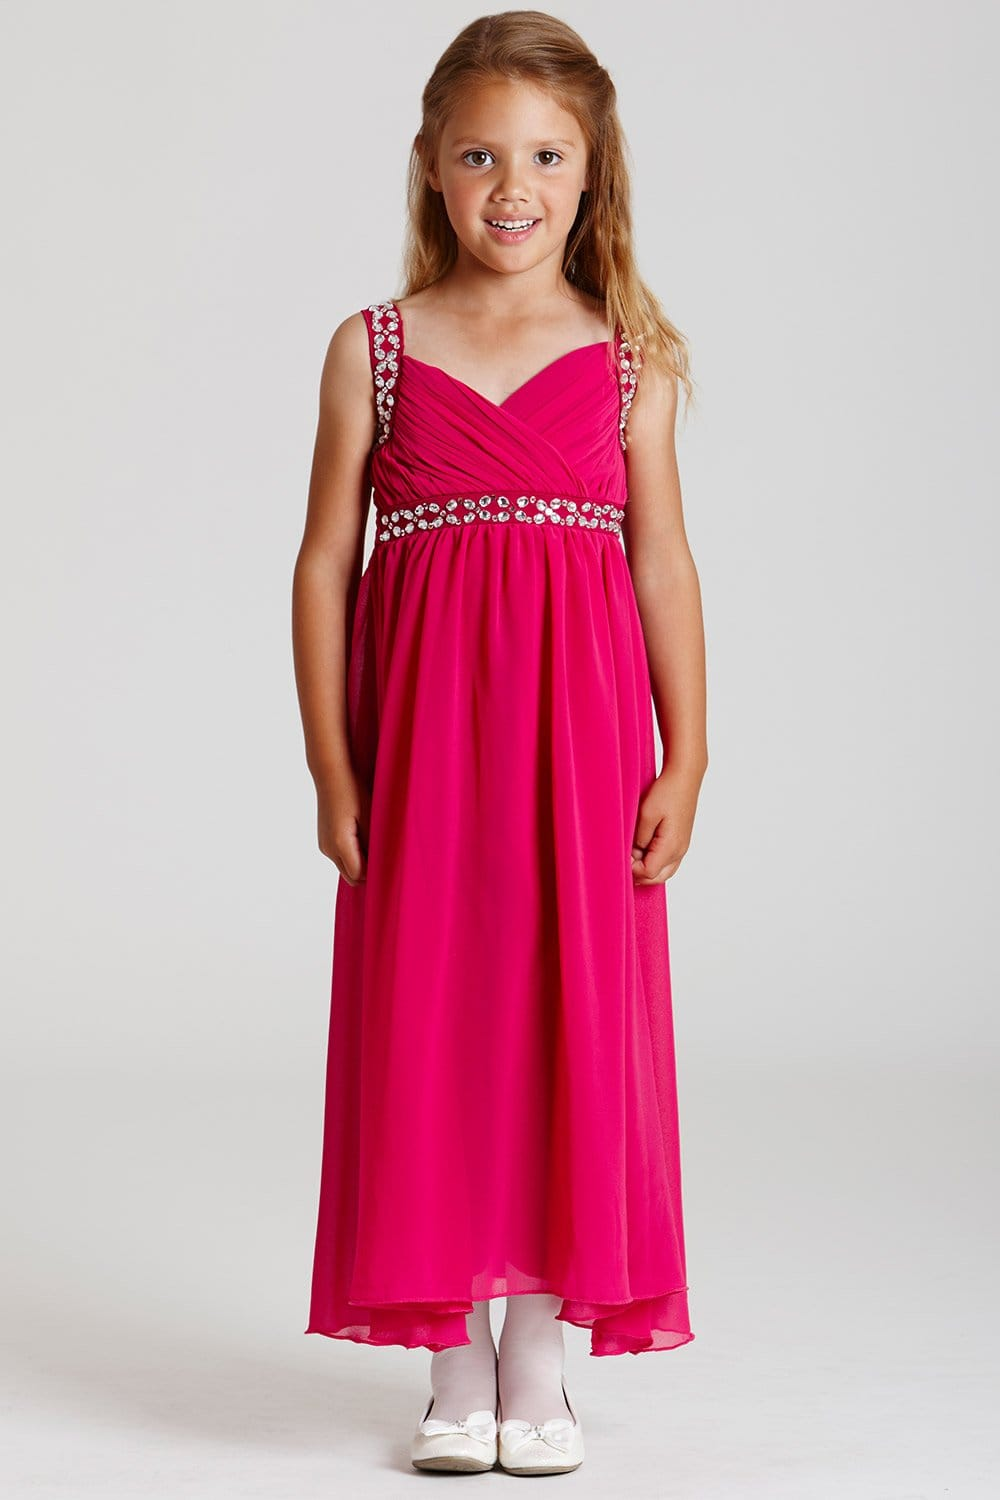 Pink Homecoming Dresses Online The color pink is often said to denote love, with many different shades ranging from sweet and romantic to bold and fiery. With a huge array of styles, silhouettes and shades, you will be able to find the perfect pink to express yourself at your special event.